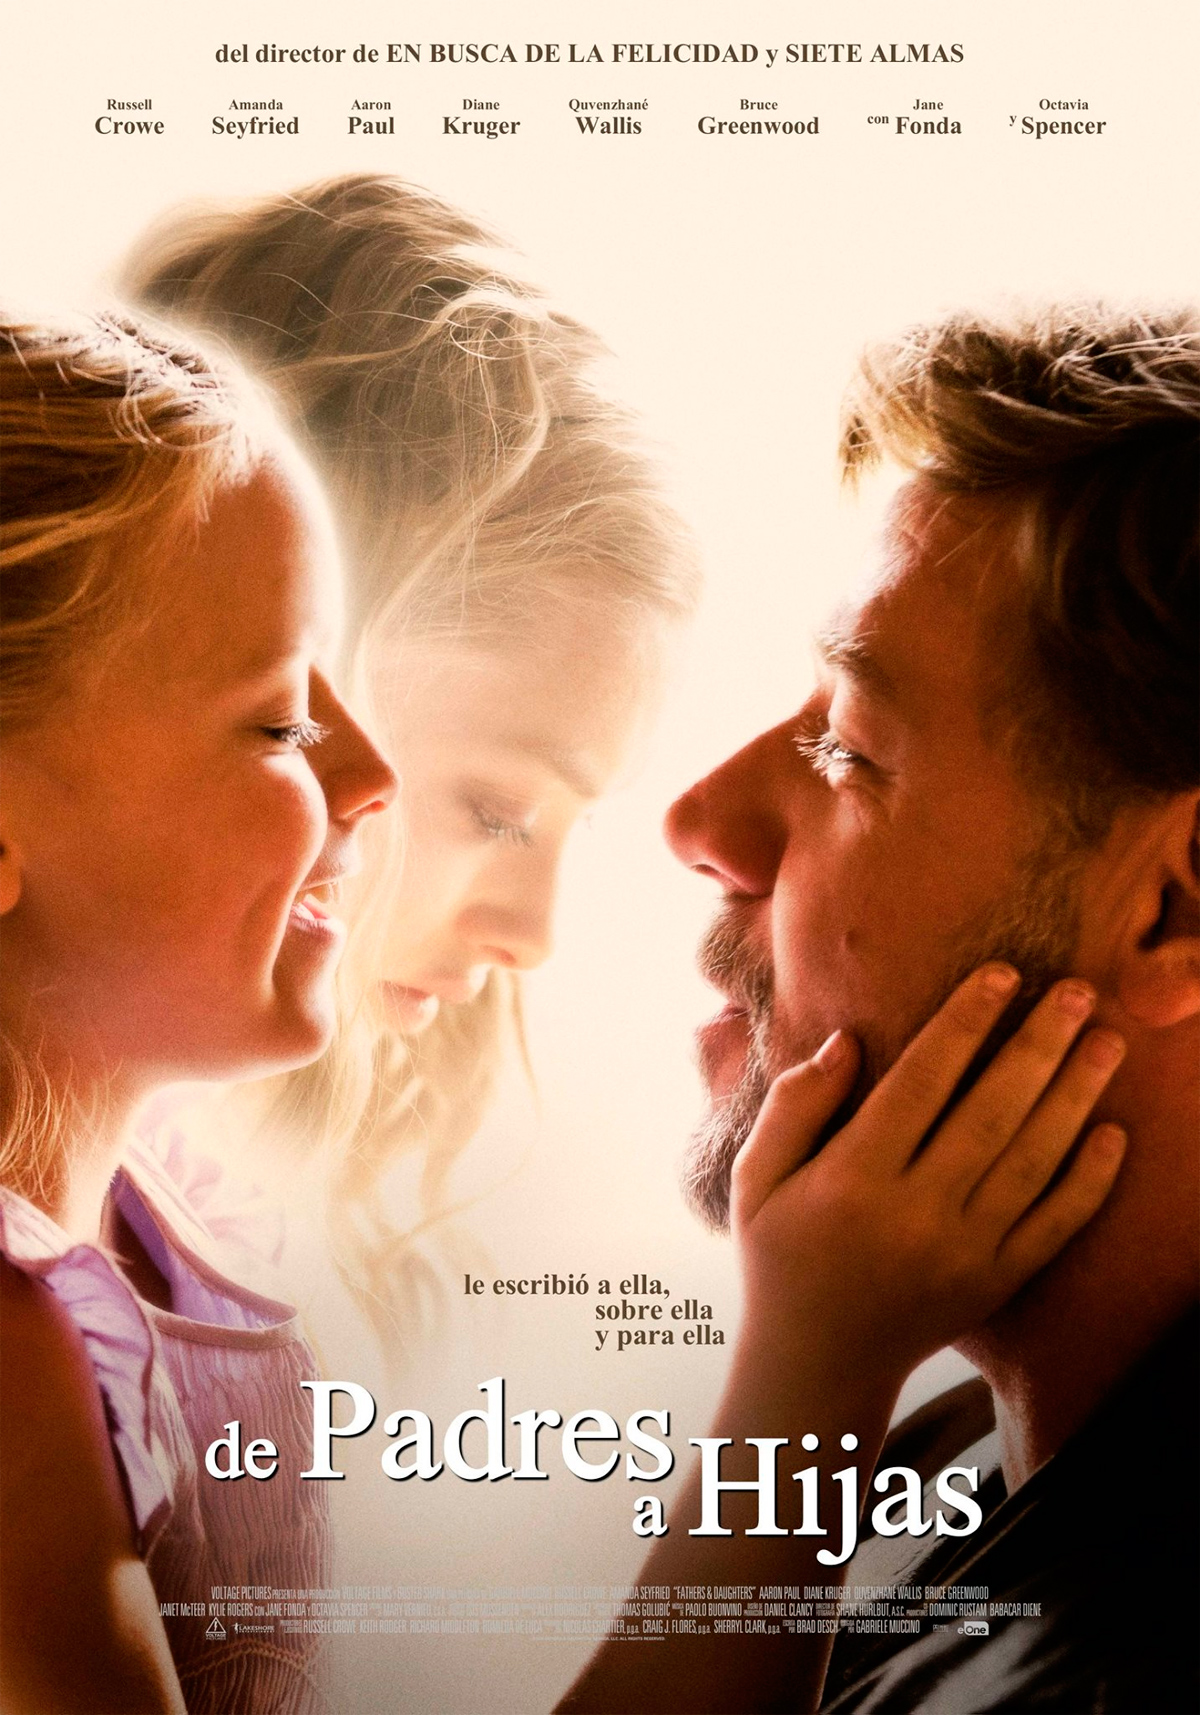 Fathers and Daughters (Padri e figlie)